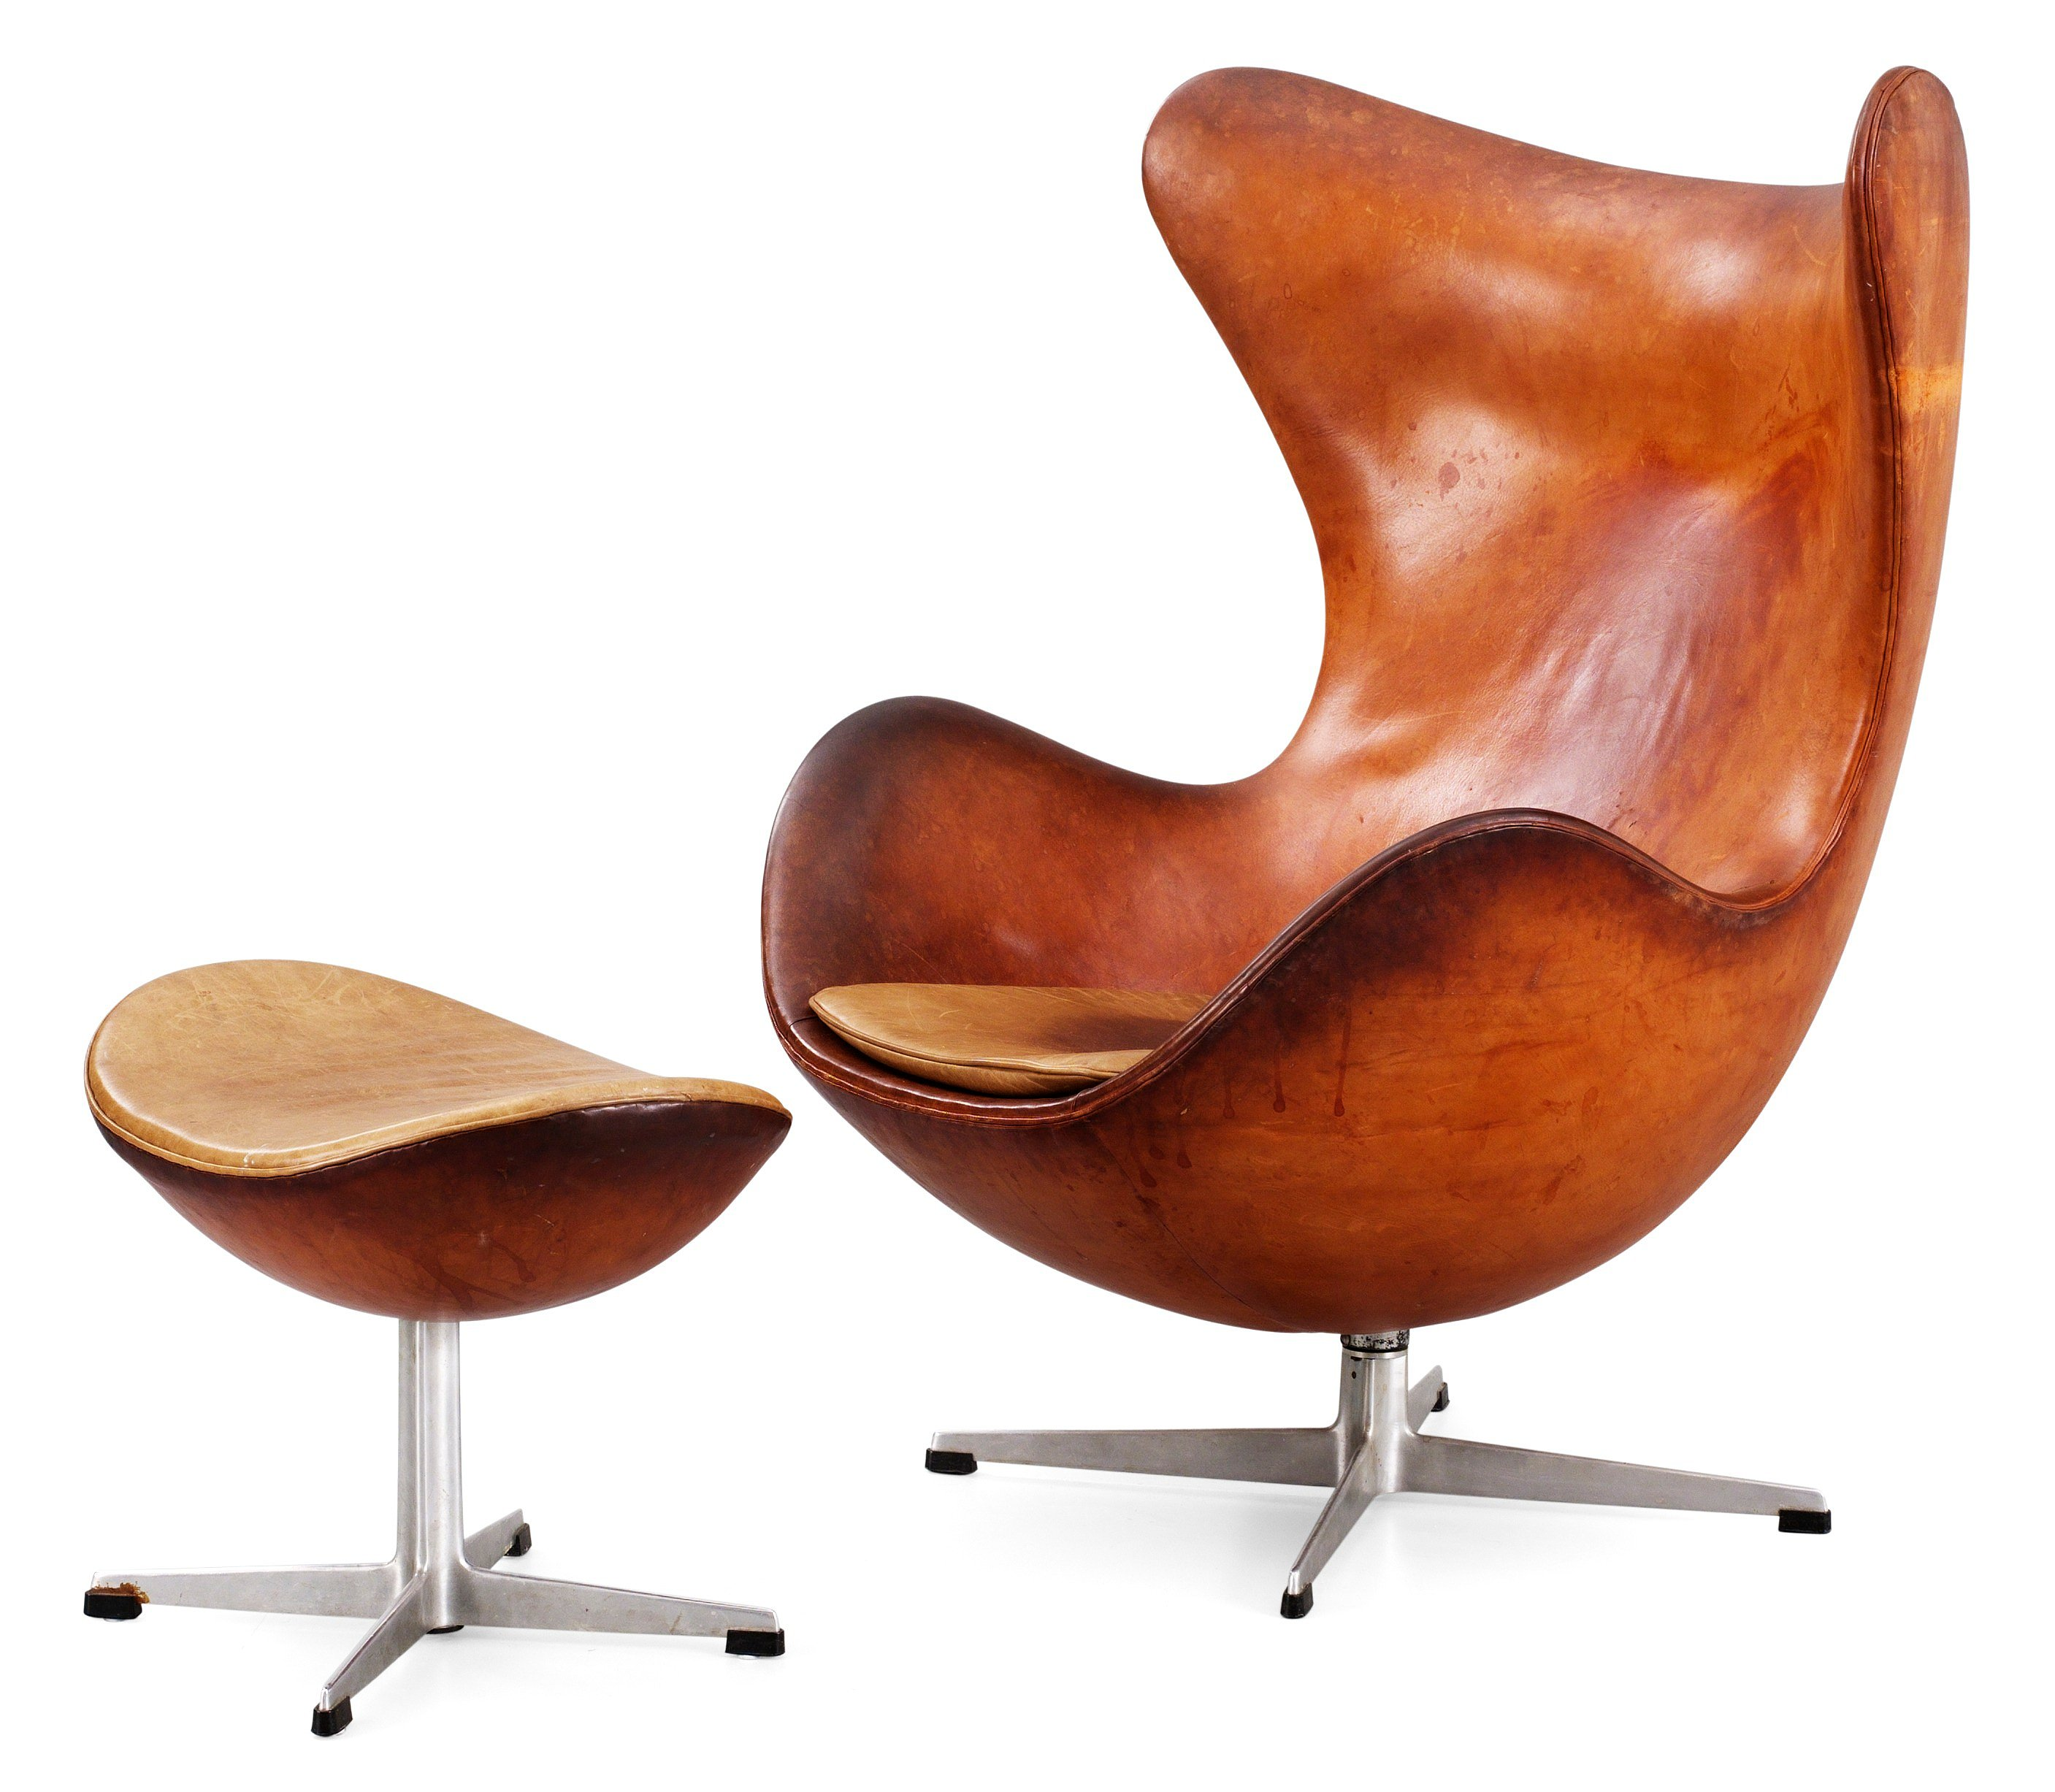 Arne jacobsen egg chair leather - 4189428 Bukobject